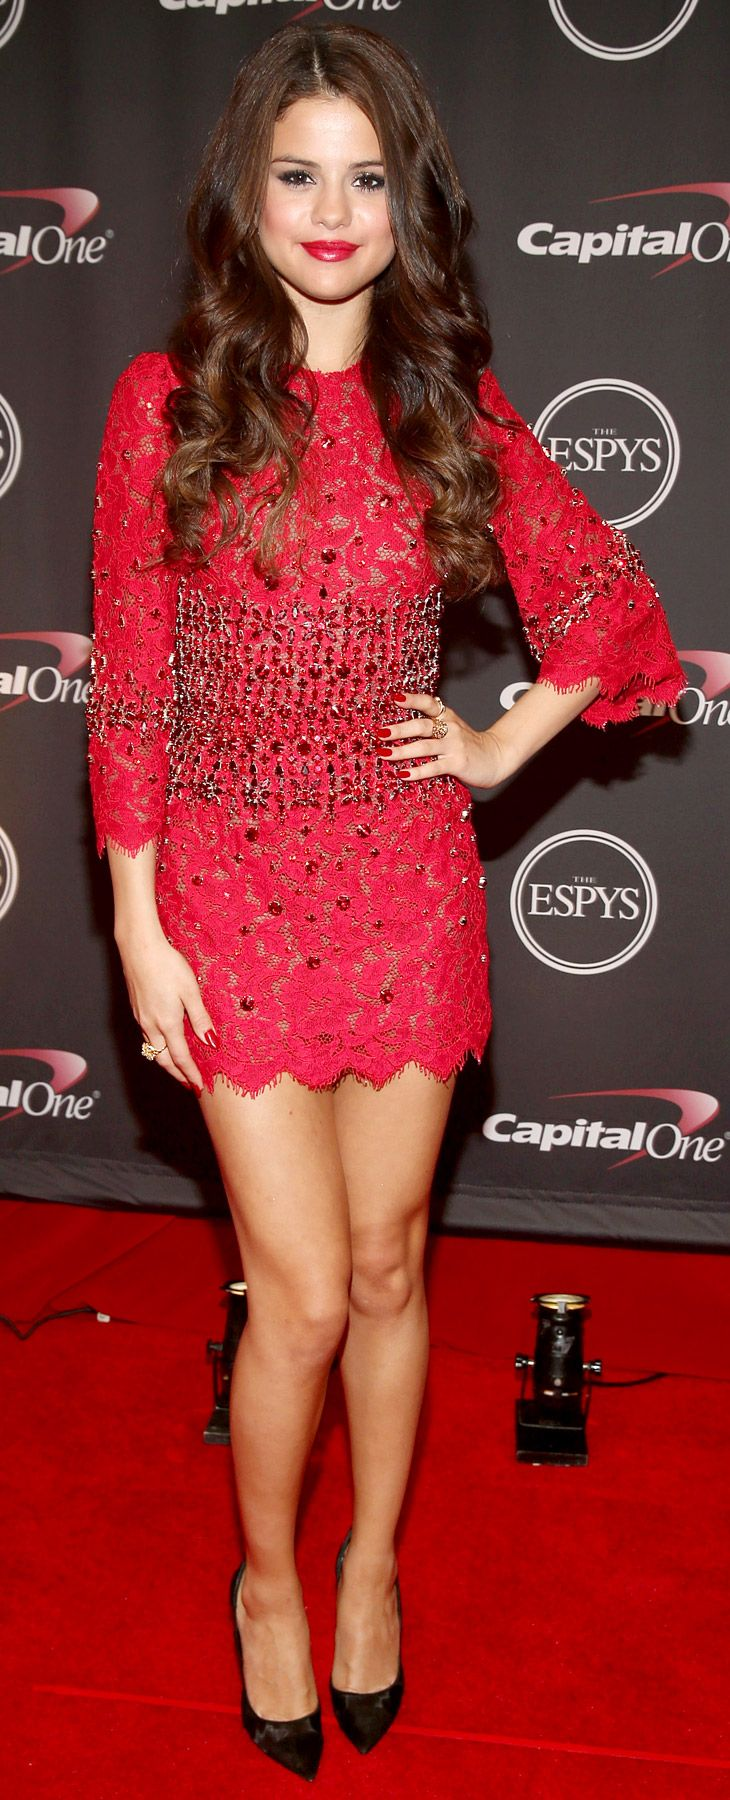 Amy purdy wedding gown  Celebrity Red Carpet Style  Selena gomez red carpet Espy awards